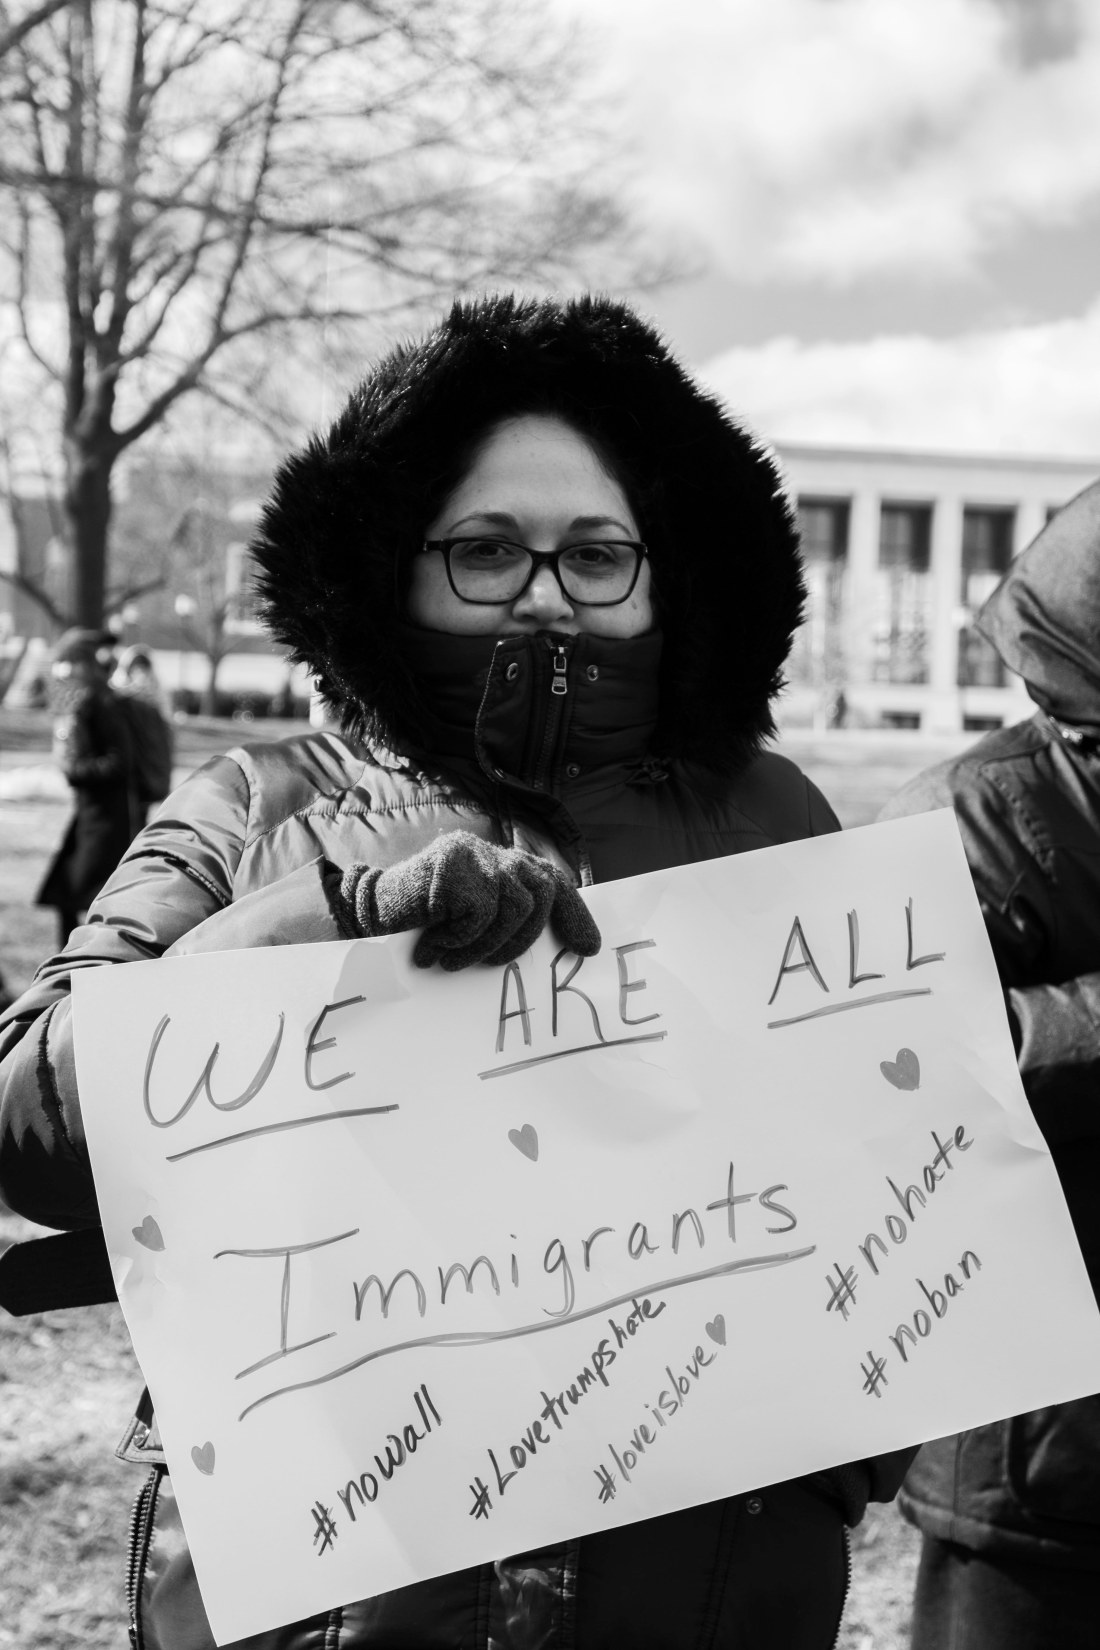 weareallimmigrants